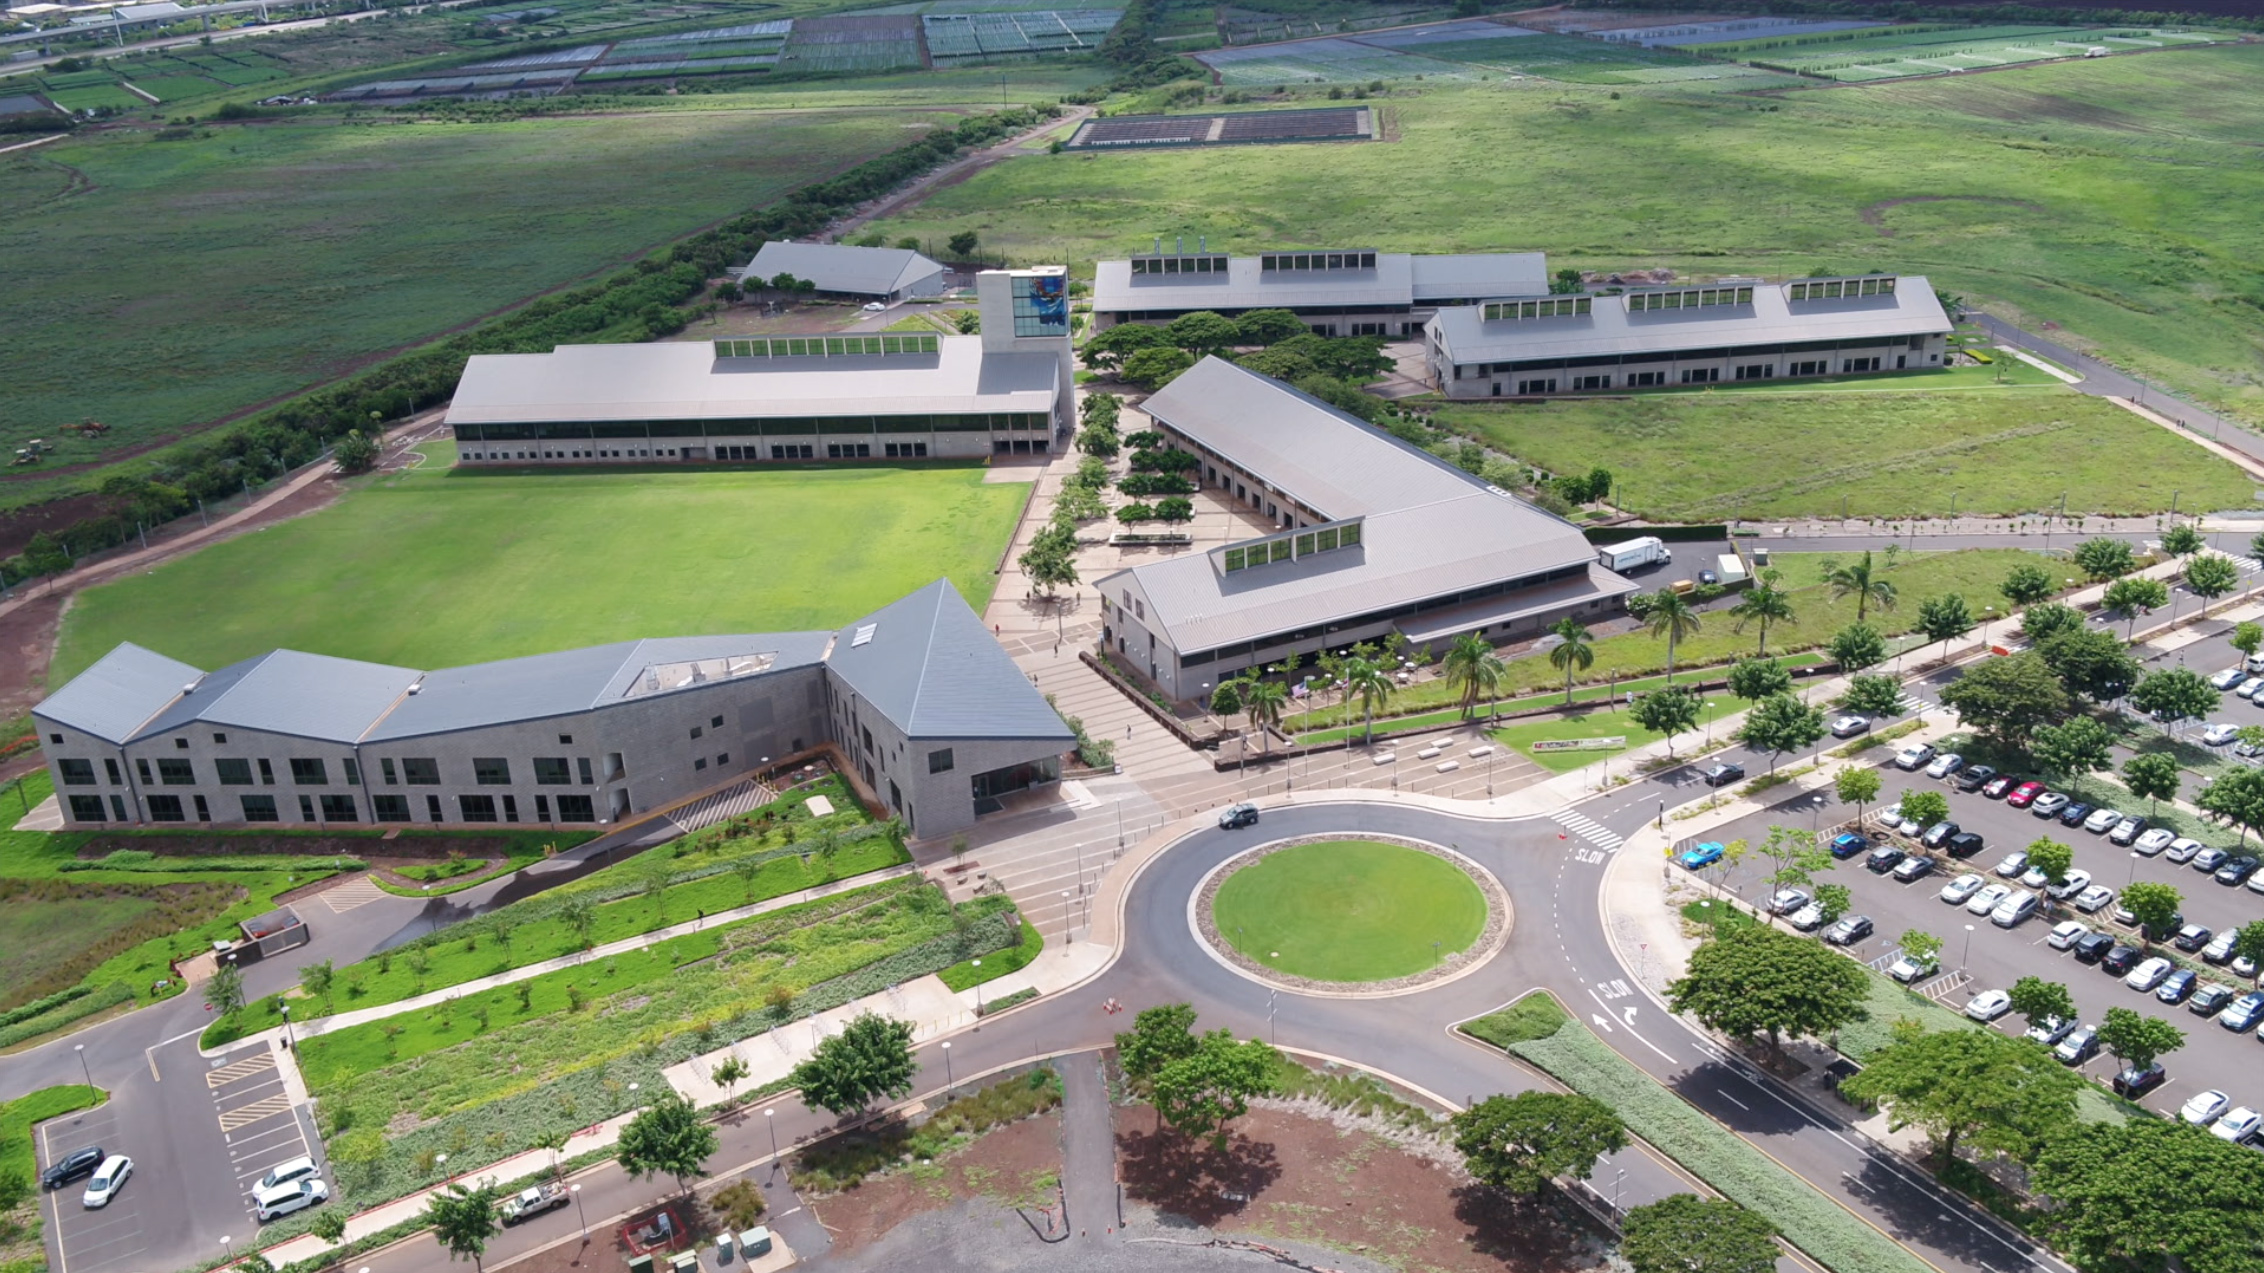 Aerial shot of the UH West Oahu Campus